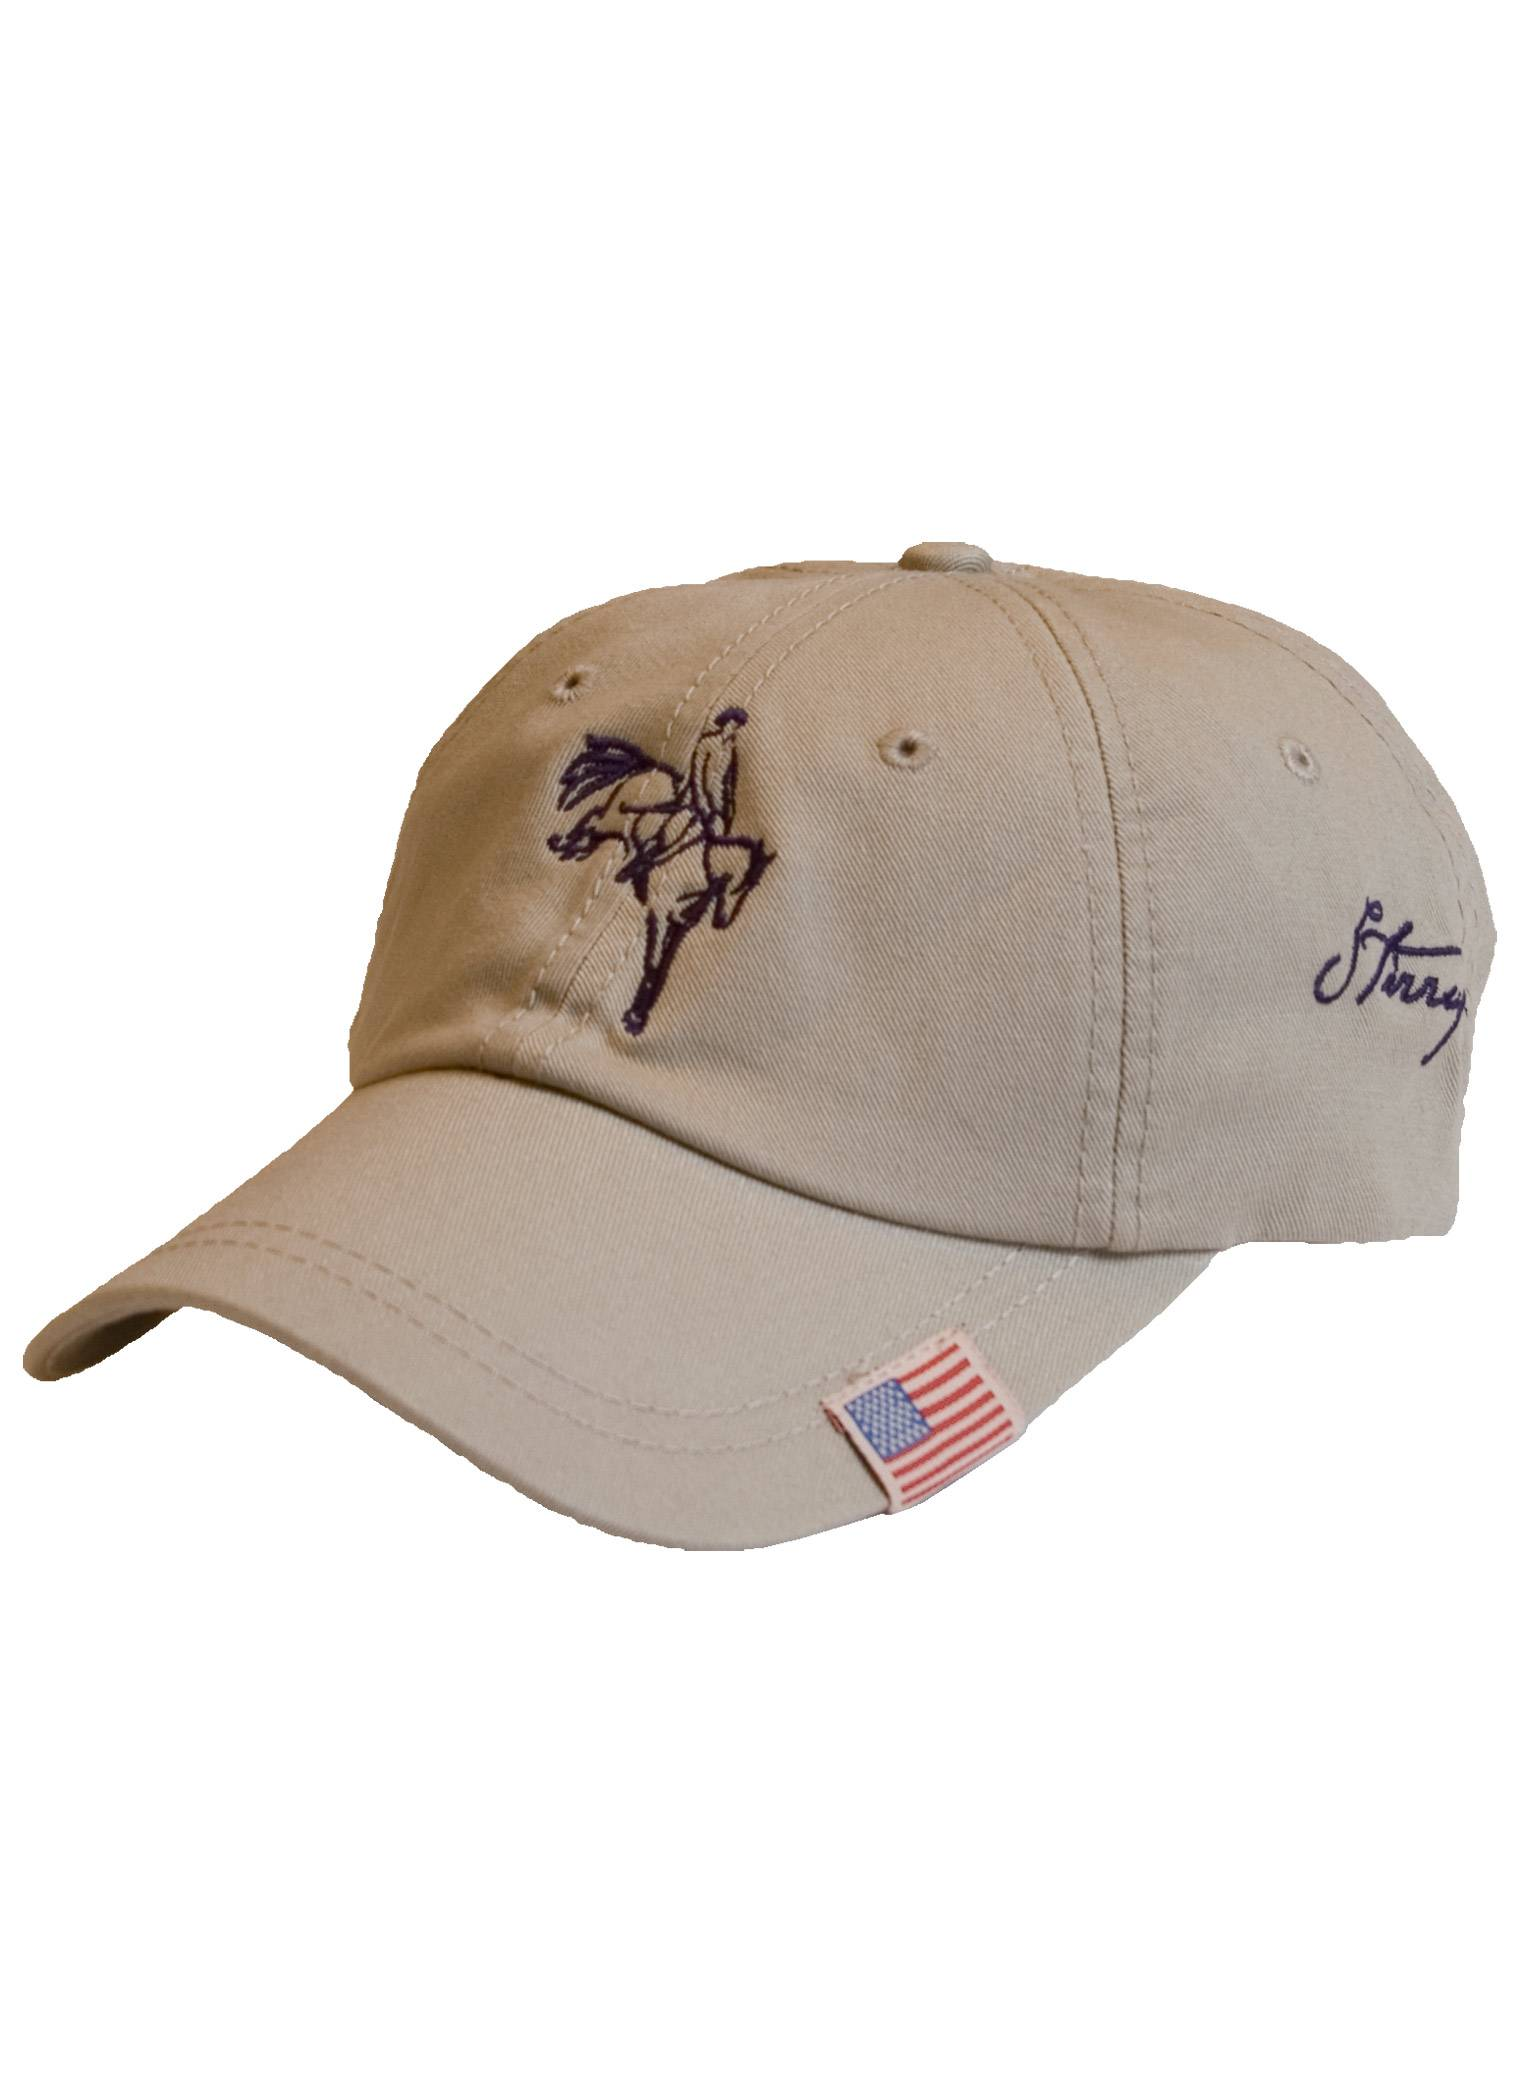 Stirrups Eventing Jumping Horse Cotton Twill Cap- Ladies